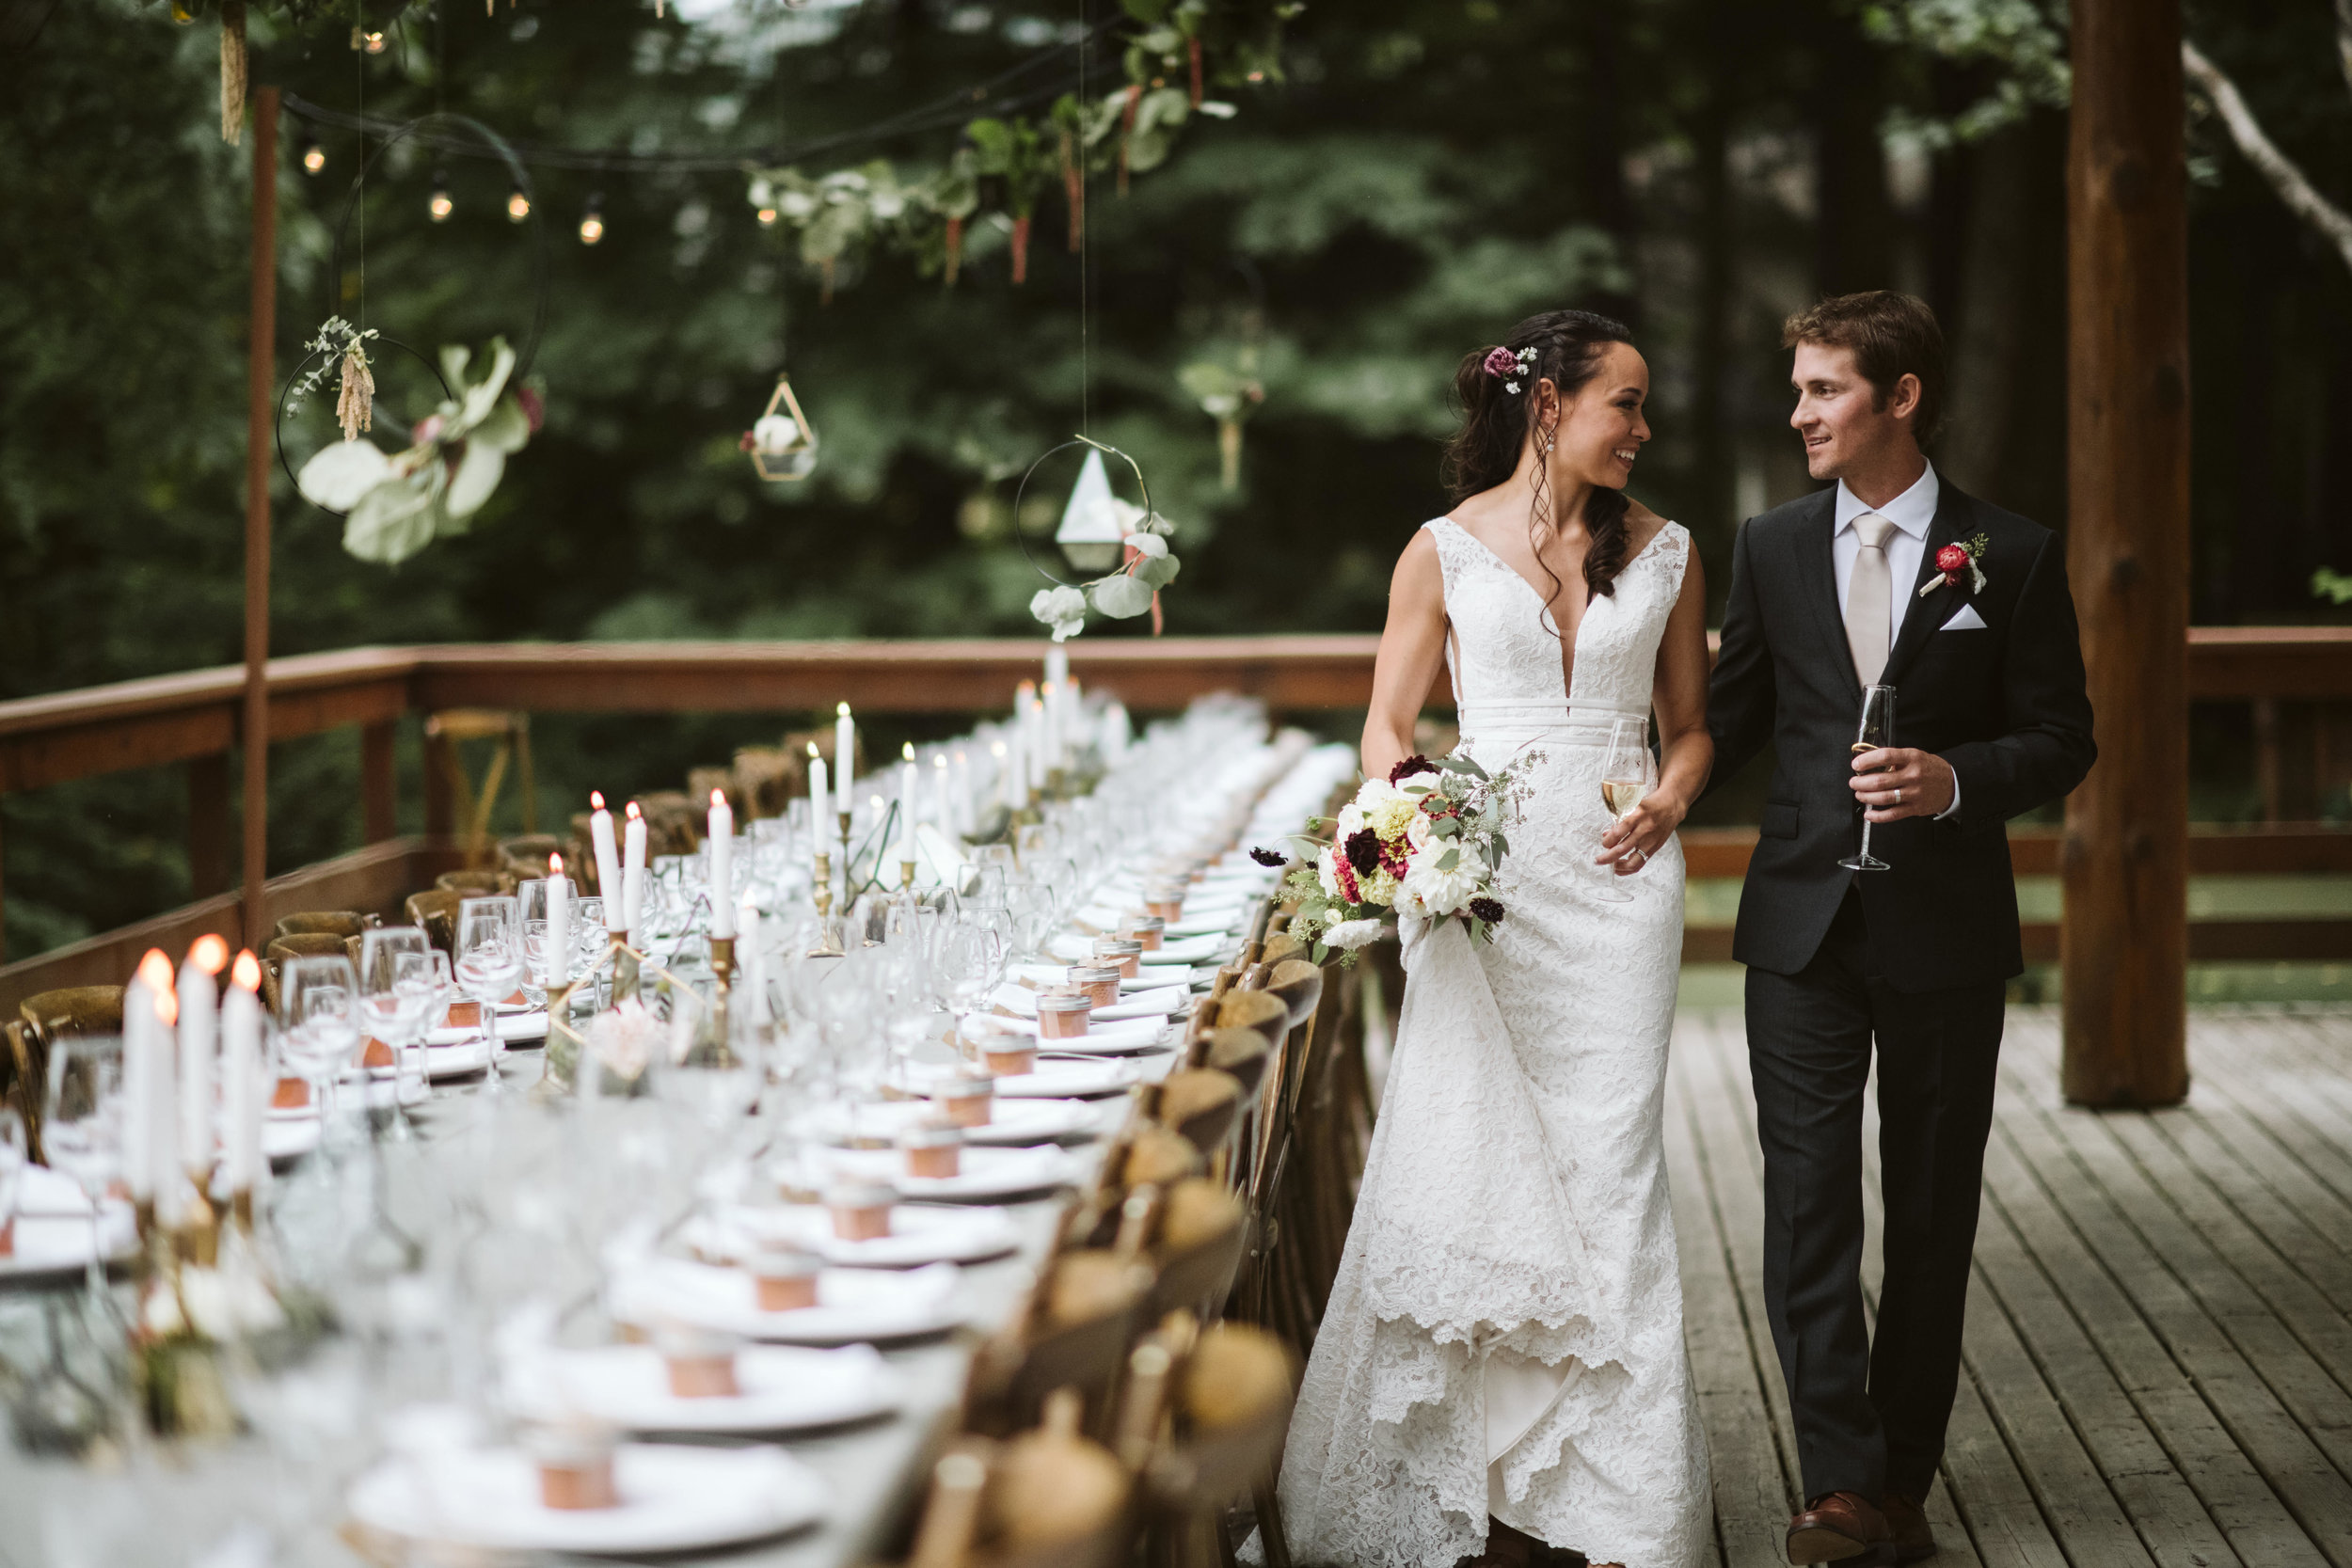 stunning outdoor wedding venue